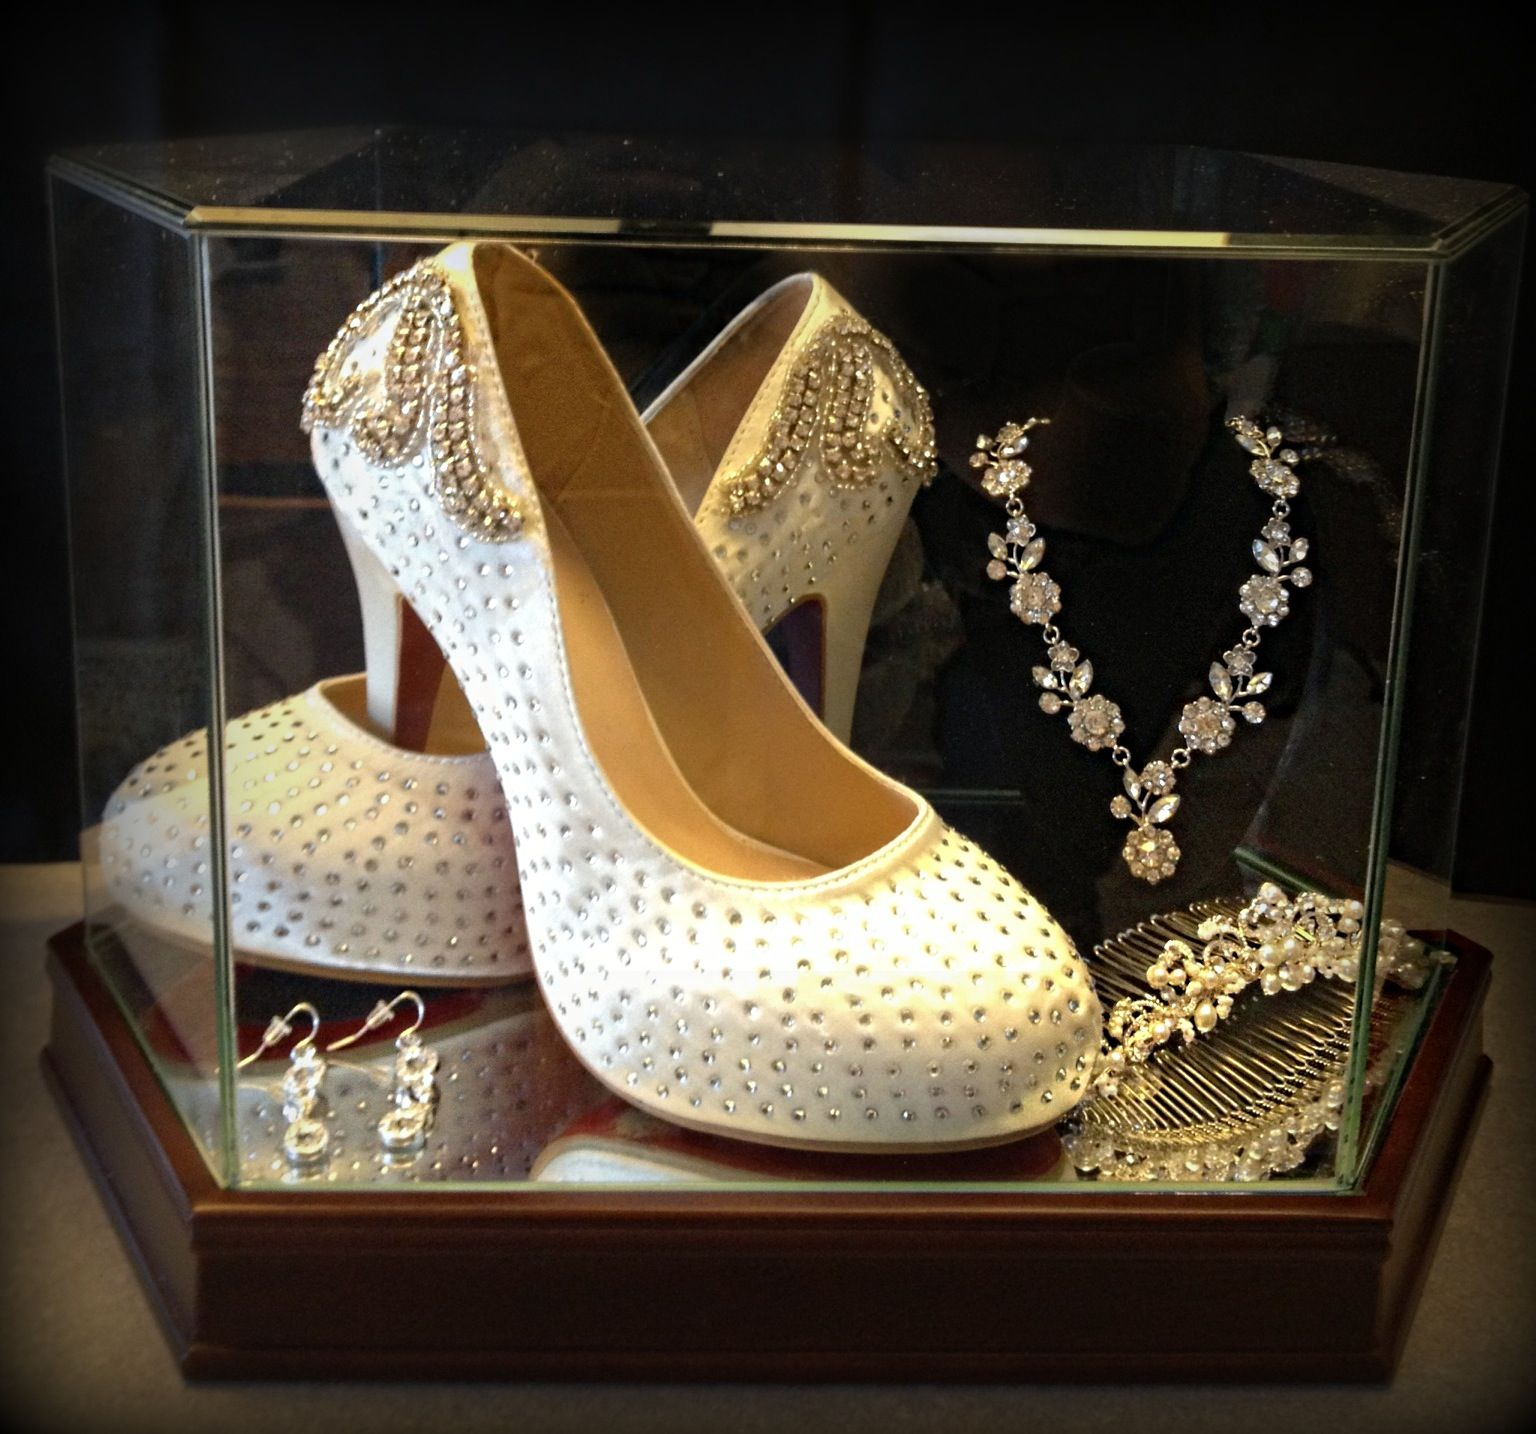 32c716d960c7 Showcase your wedding accessories  wedding  shoes  display